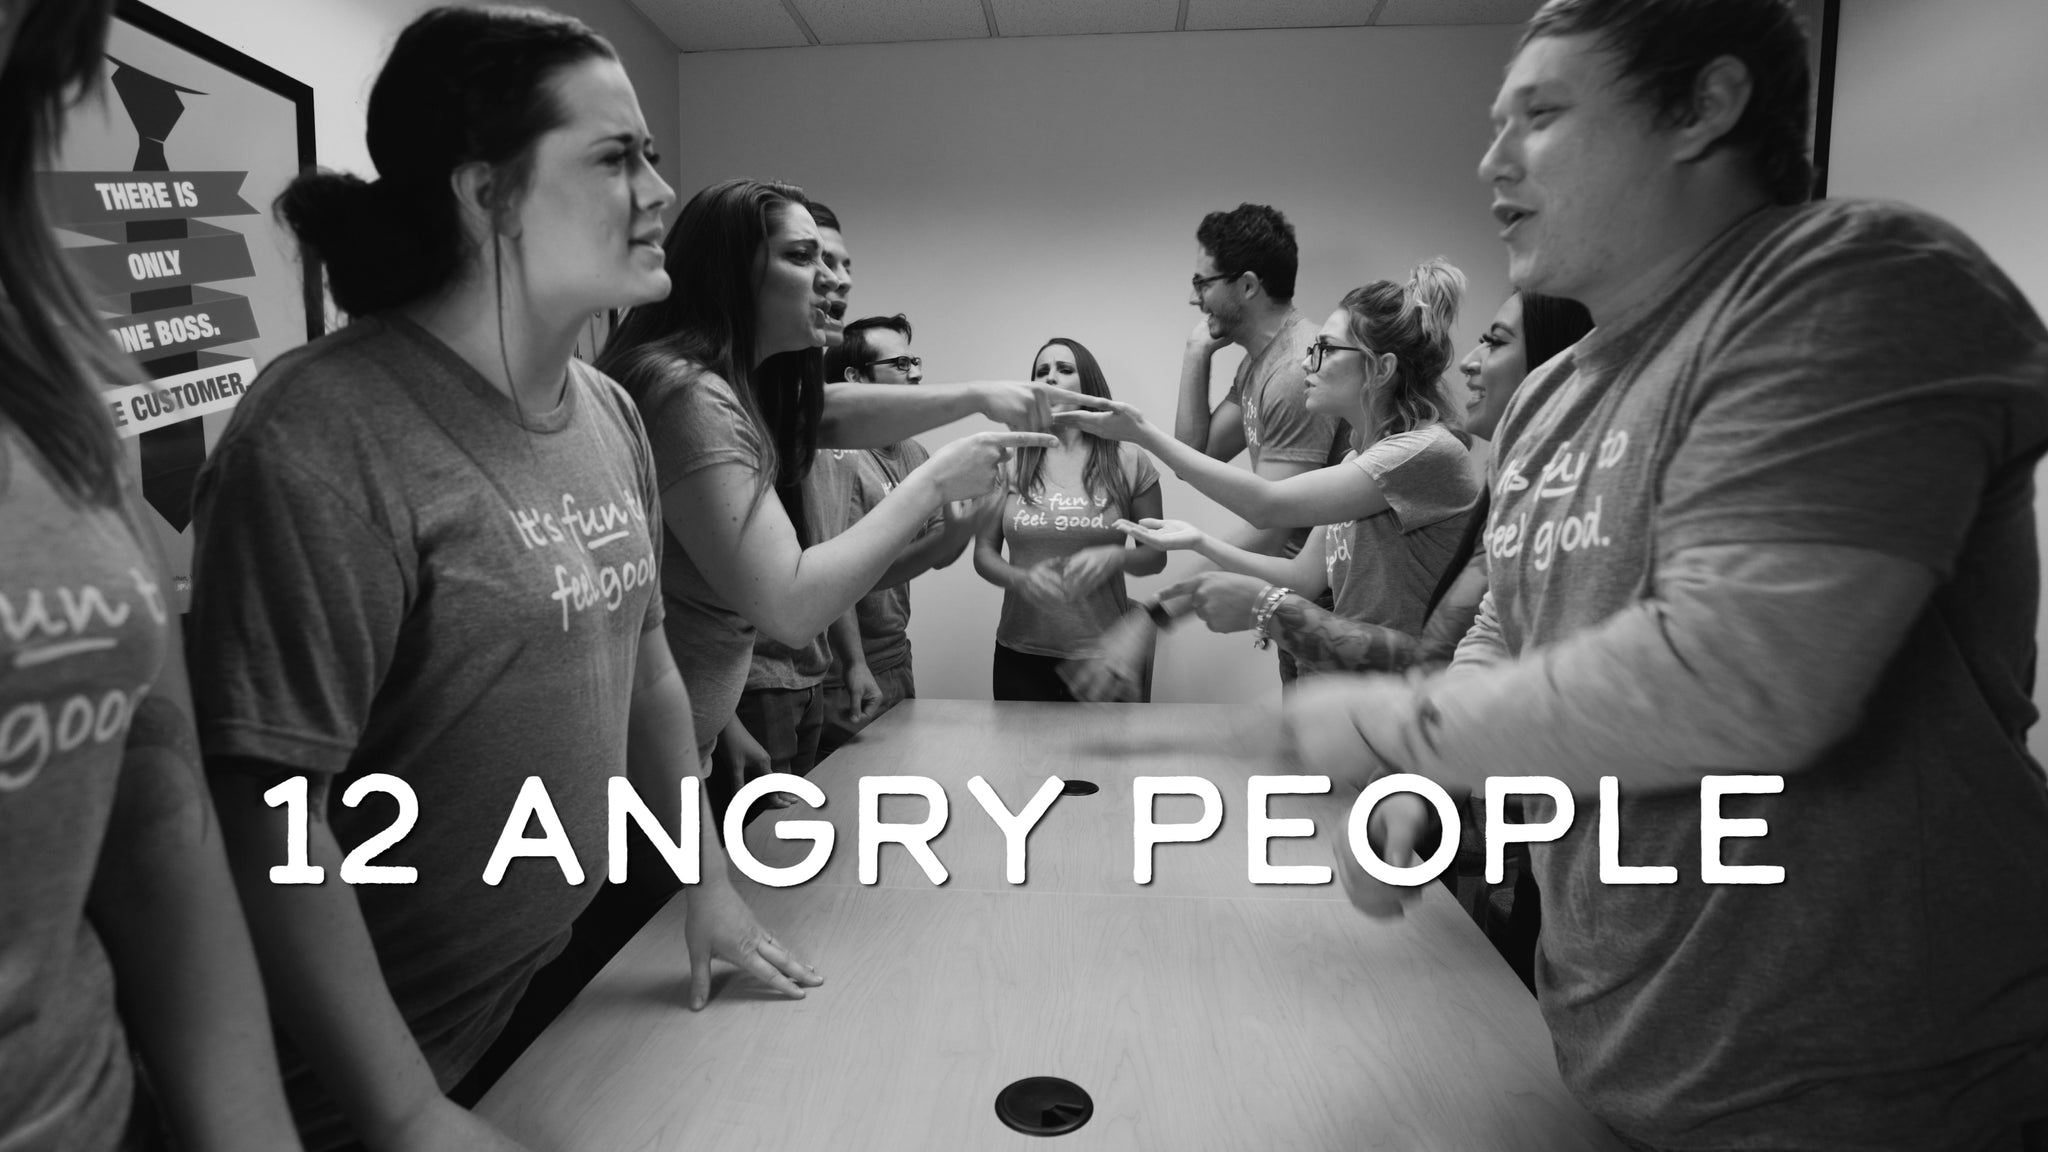 12 Angry People | #FunnyFriday